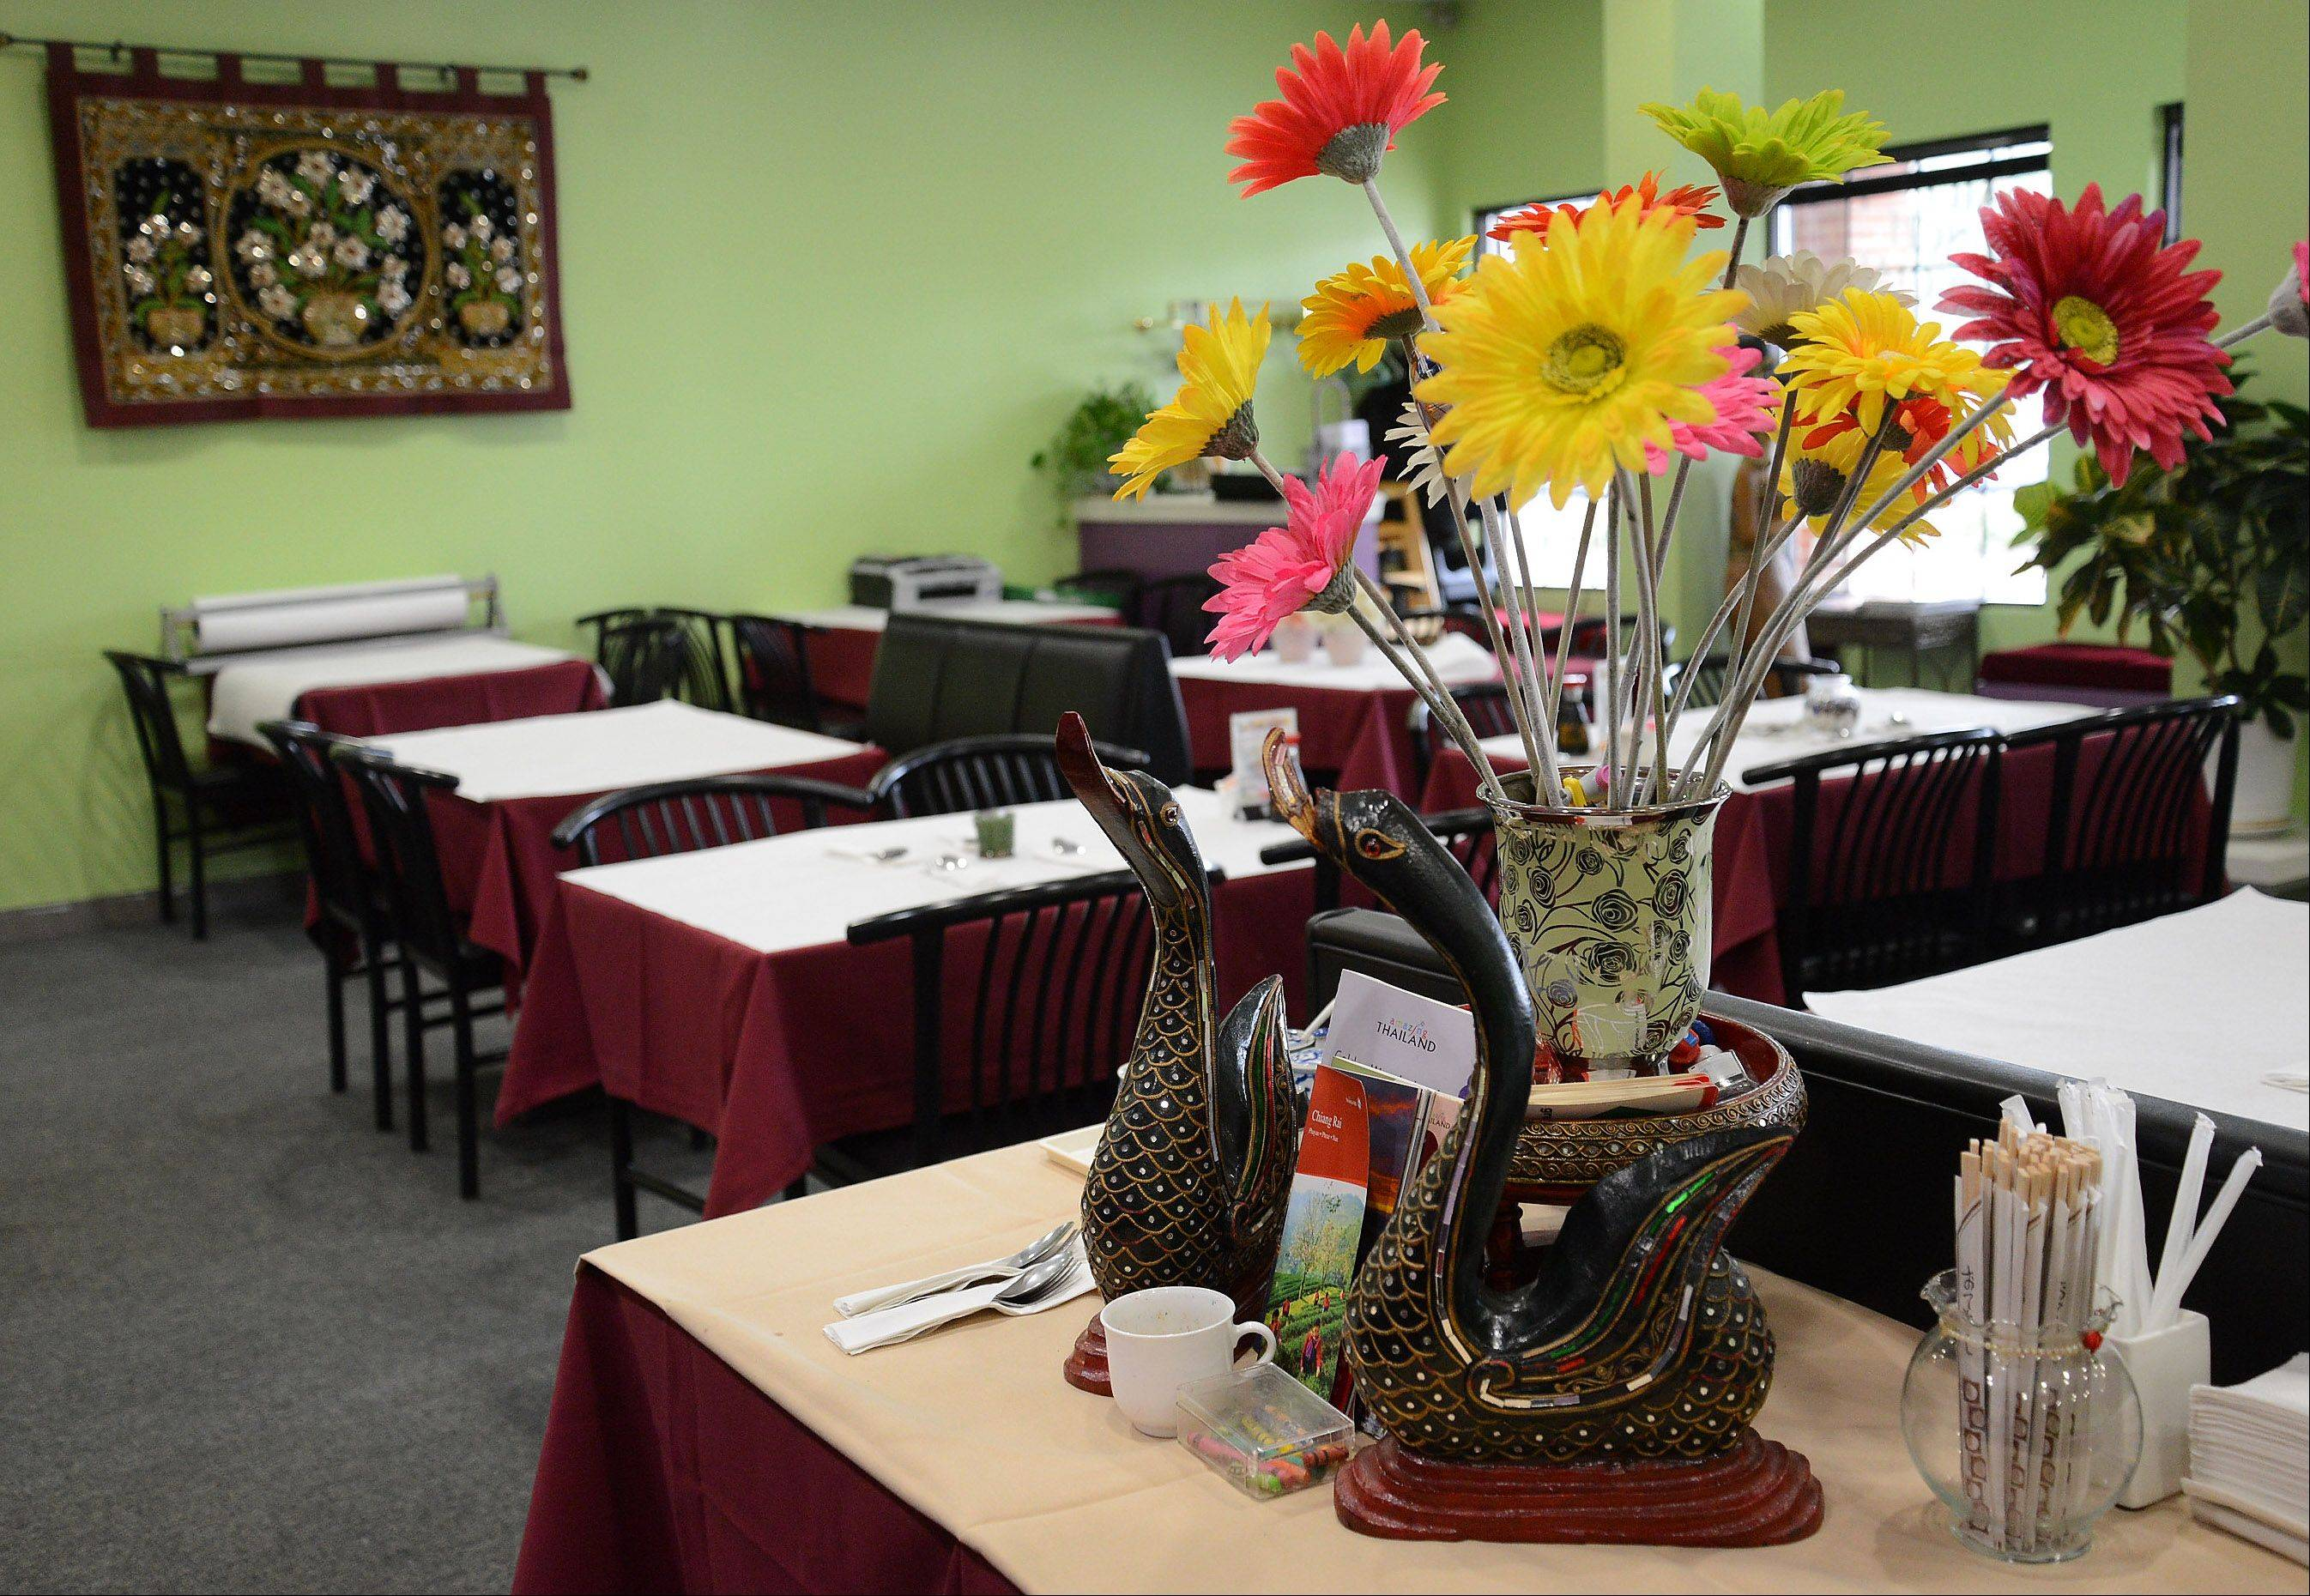 Vibrant green walls and fresh flowers welcome diners to Lovely Thai in Grayslake.